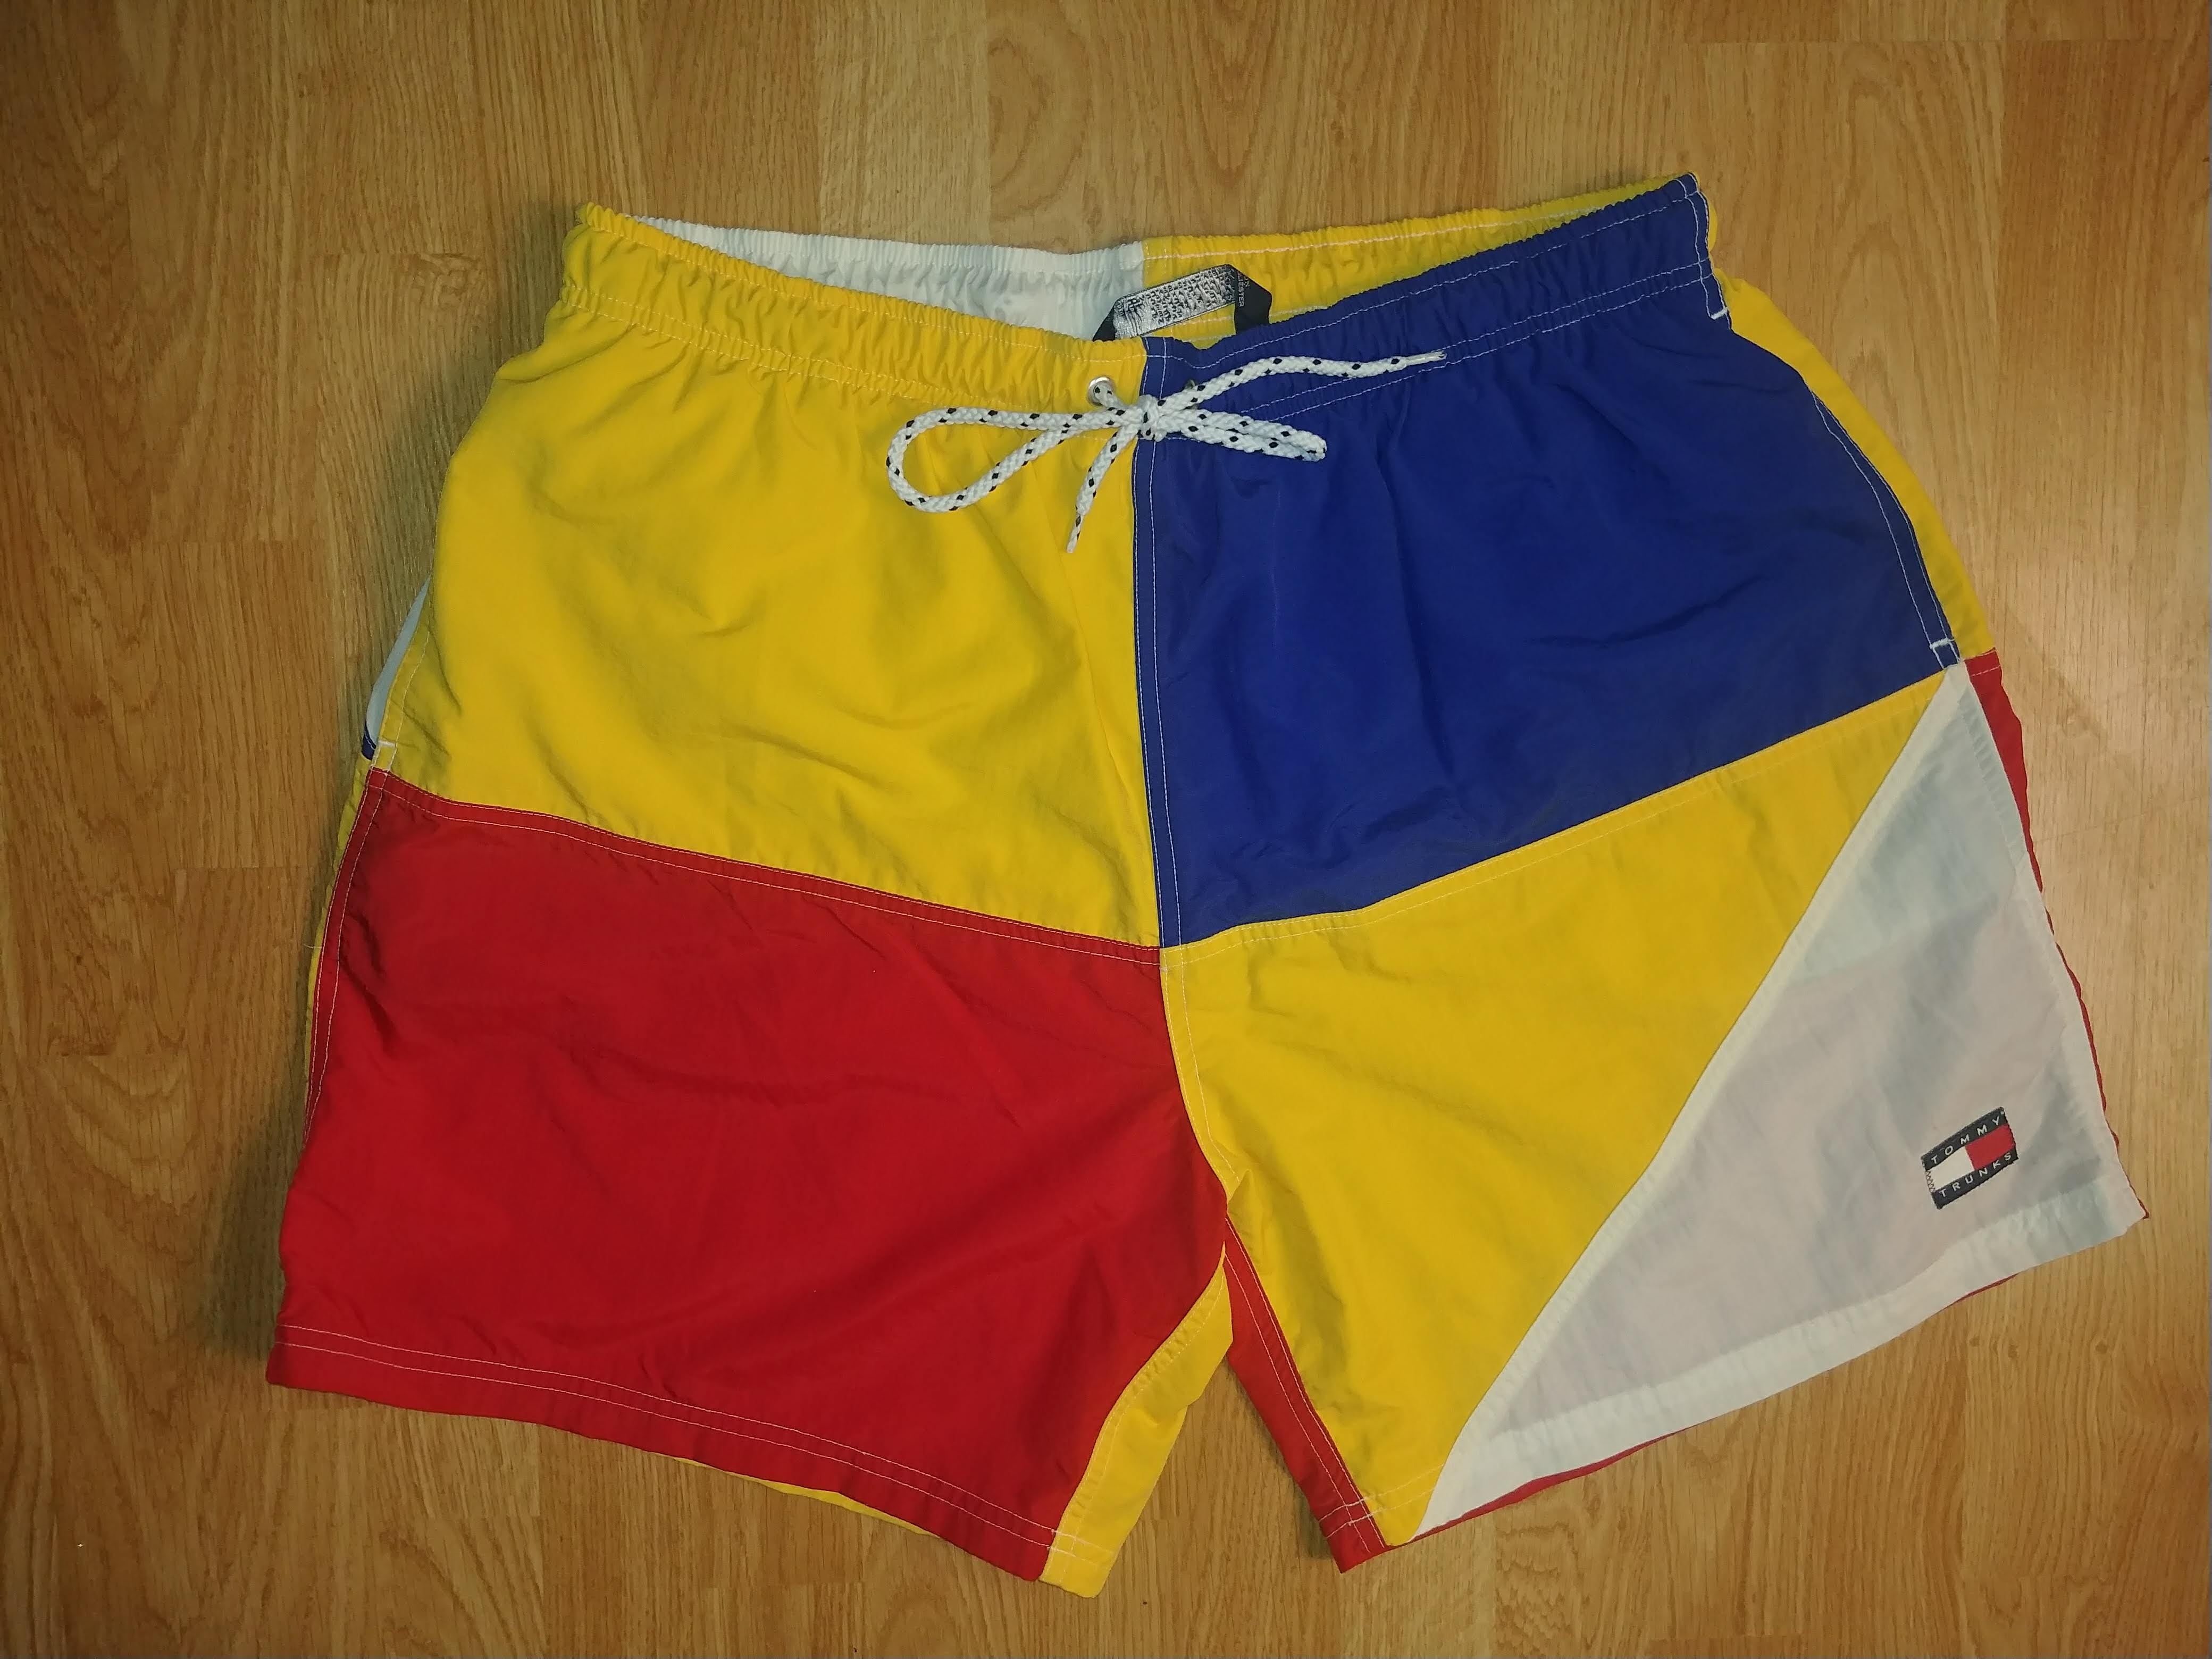 ba85b007ab Tommy Hilfiger ×. Vintage 90's Tommy Hilfiger Color Block Swim Trunks  Sailing Shorts